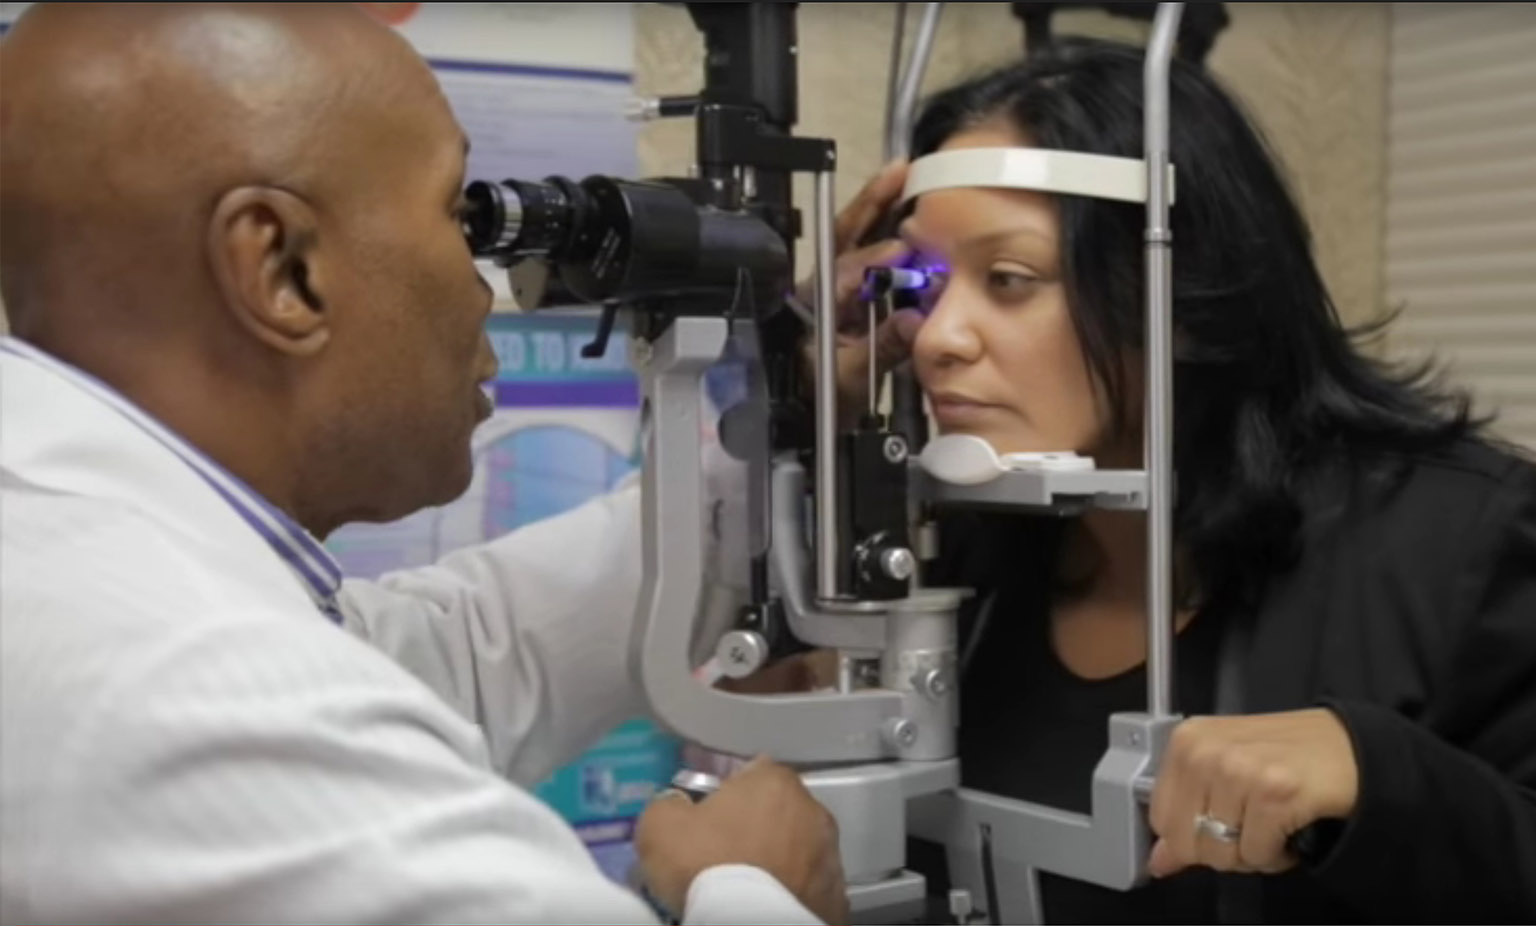 Central Parkway Eye Care Center - cataract surgeon near me - Cataract Surgery near me - Cataract Surgery East Orange NJ - Blurred vision - eye sensitivity to glare